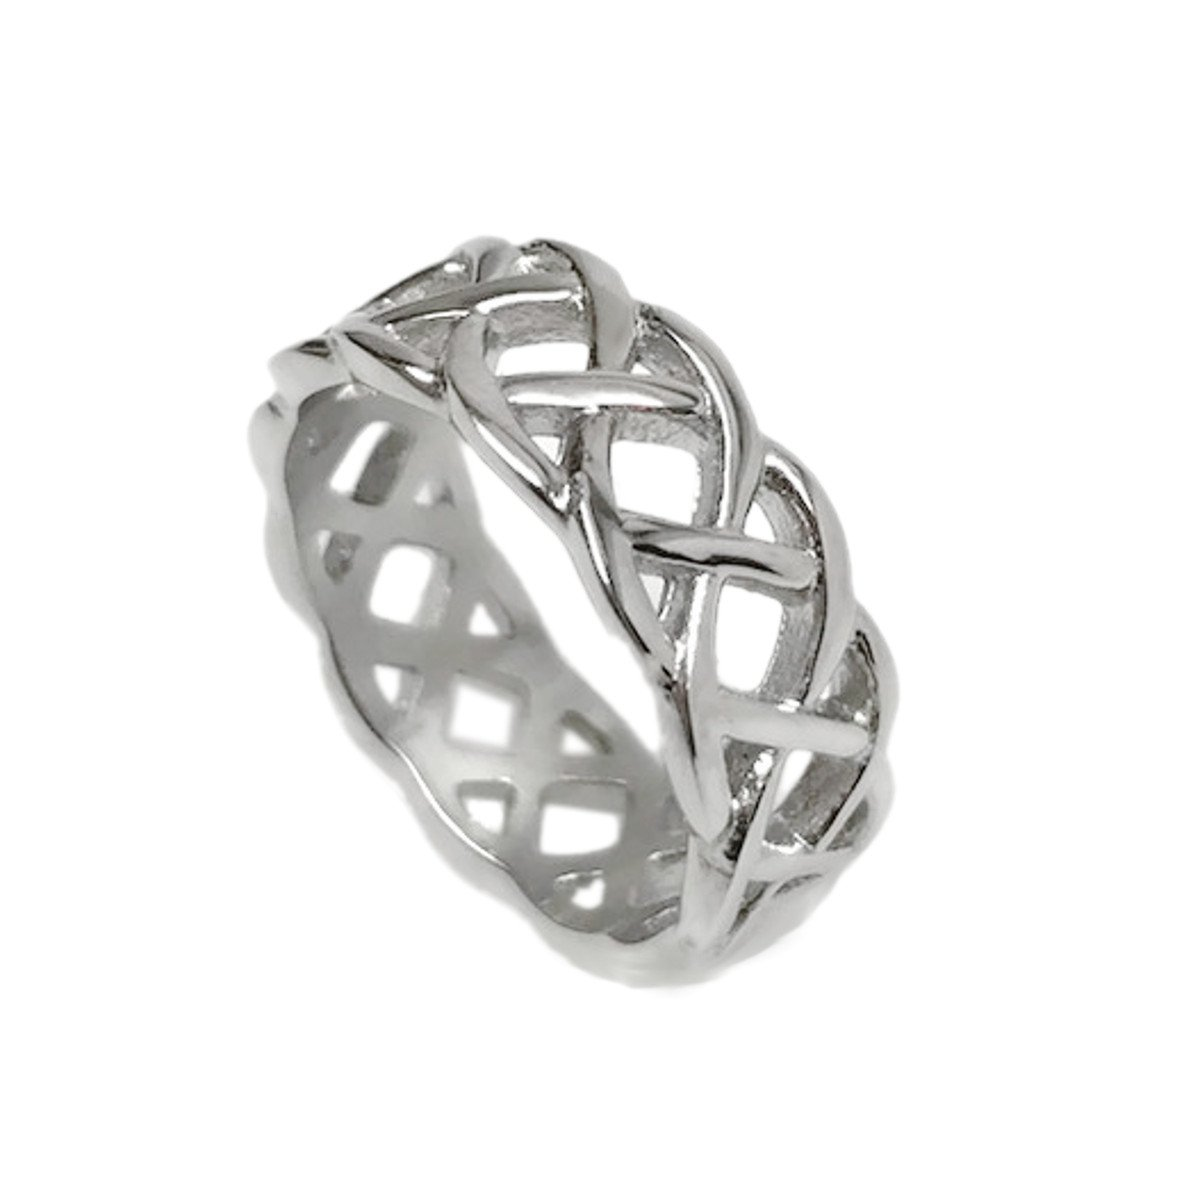 Mens Silver Braided Stainless Steel Celtic Knot Band Ring Love Wedding Non Tarnish (Size 12)